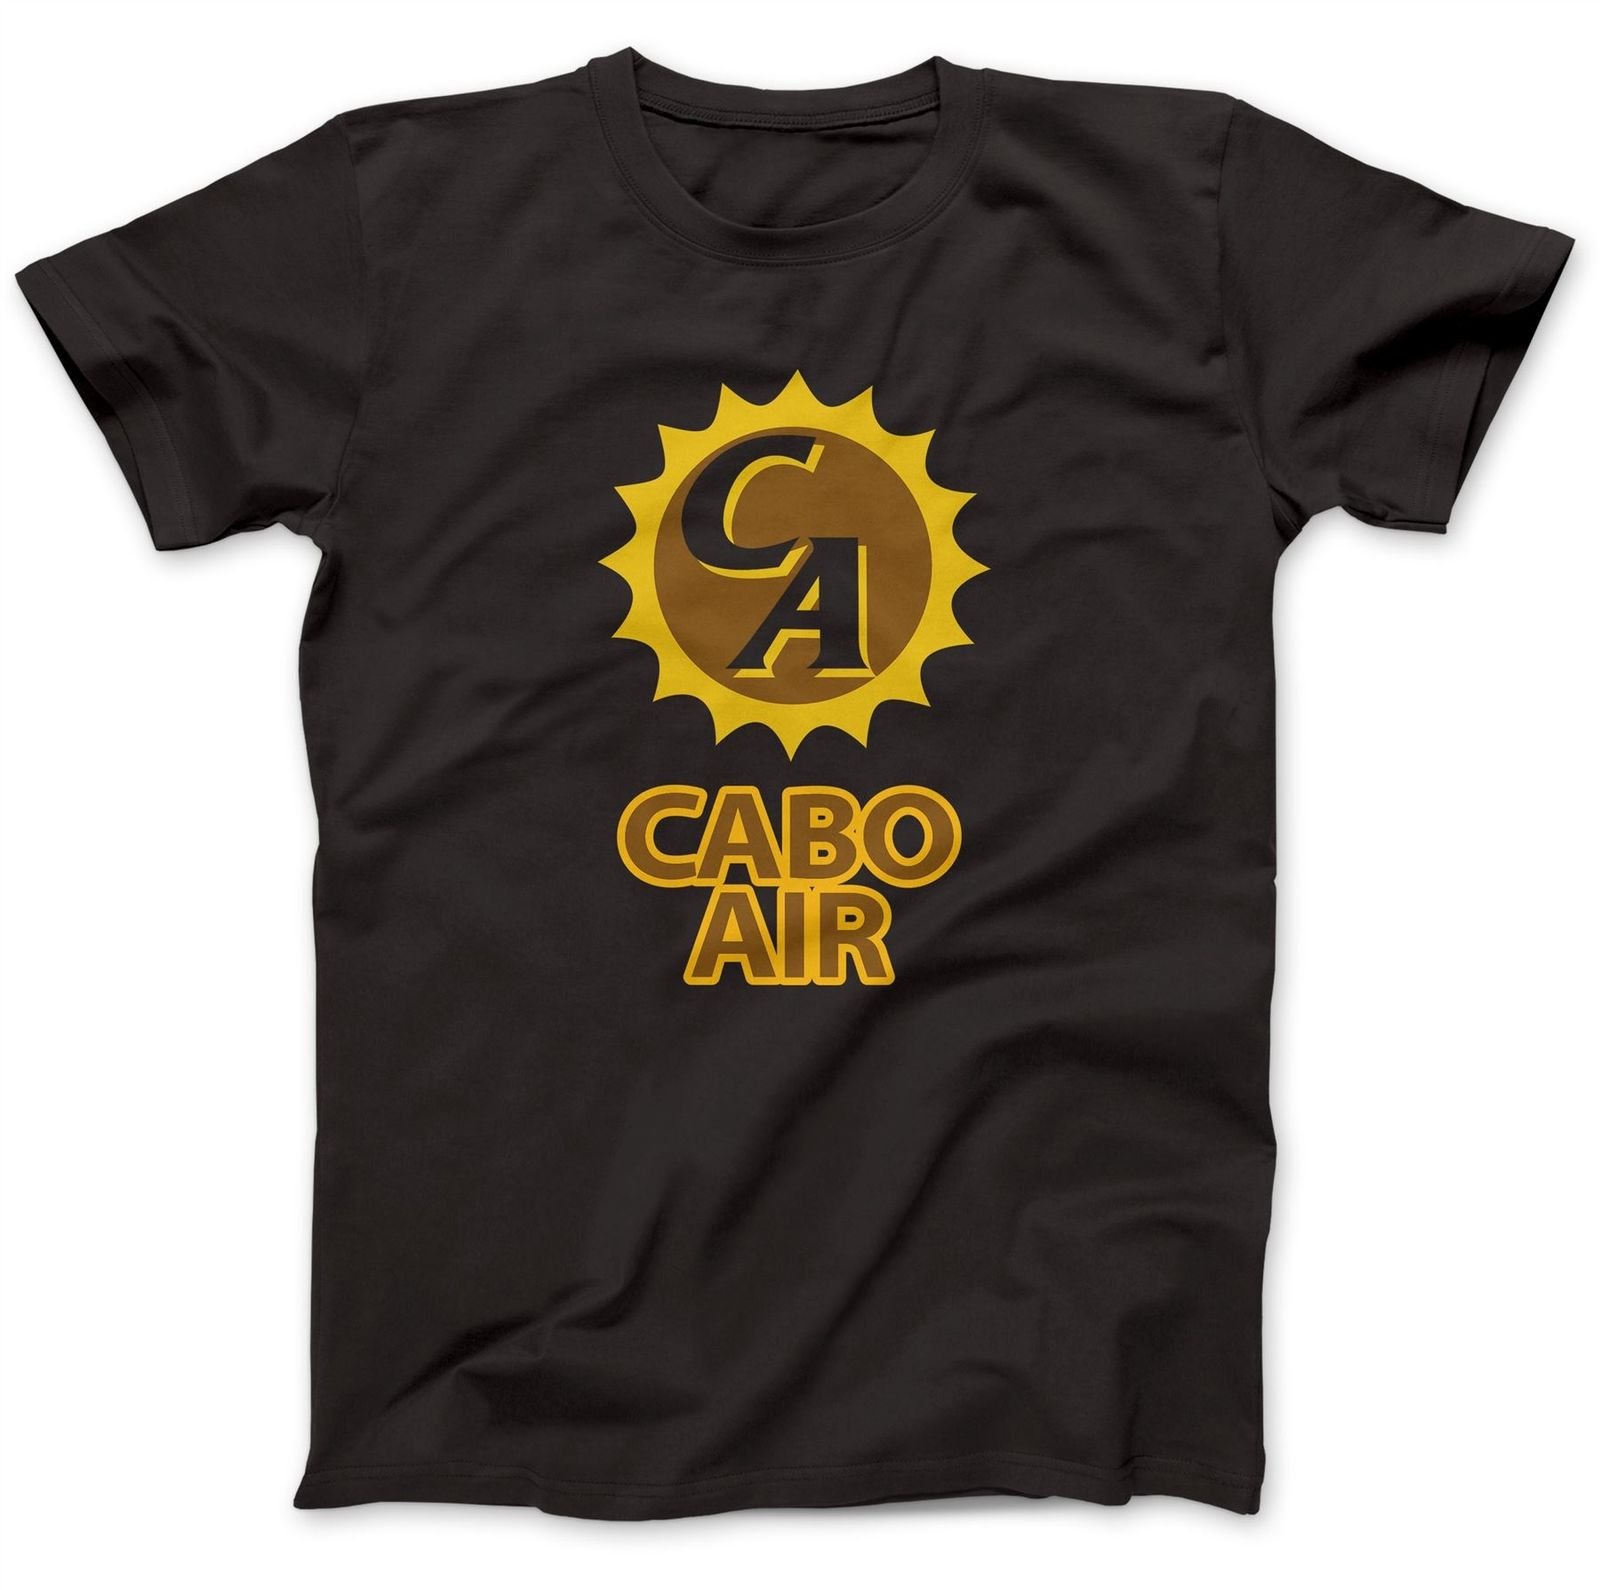 cabo-air-inspired-by-jackie-brown-t-shirt-100-premium-cotton-quentin-font-b-tarantino-b-font